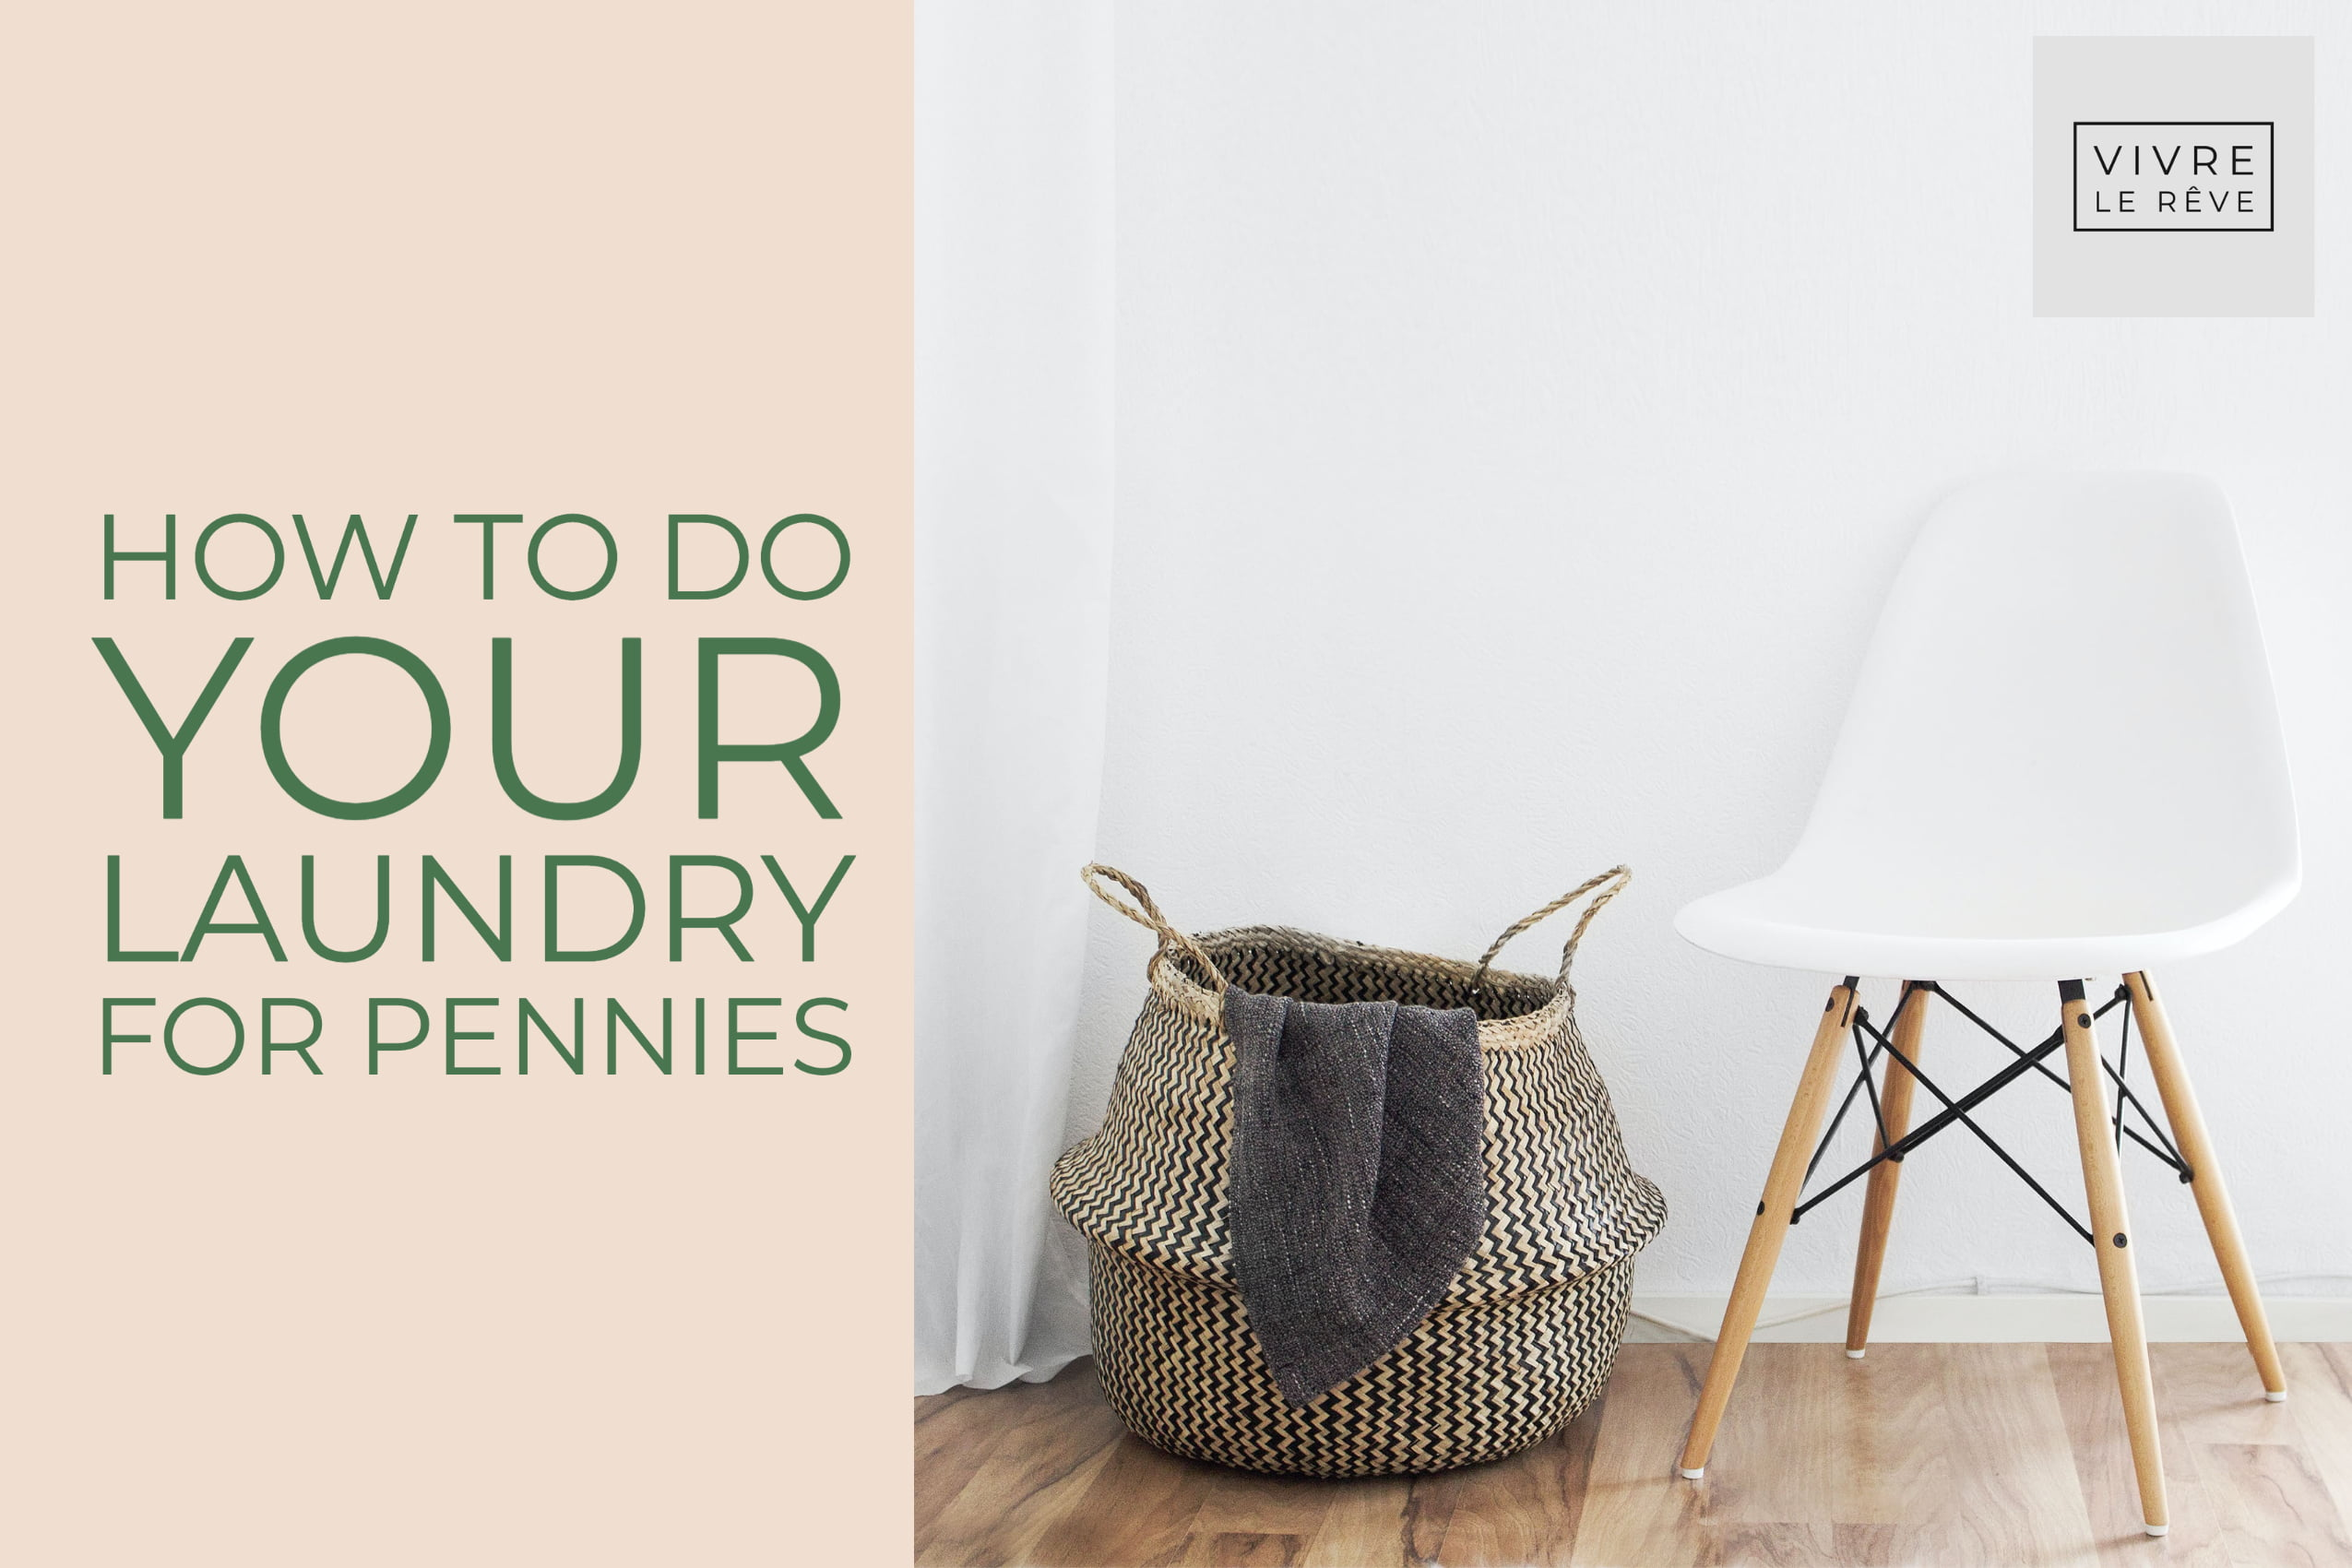 How to Do Your Laundry For Pennies